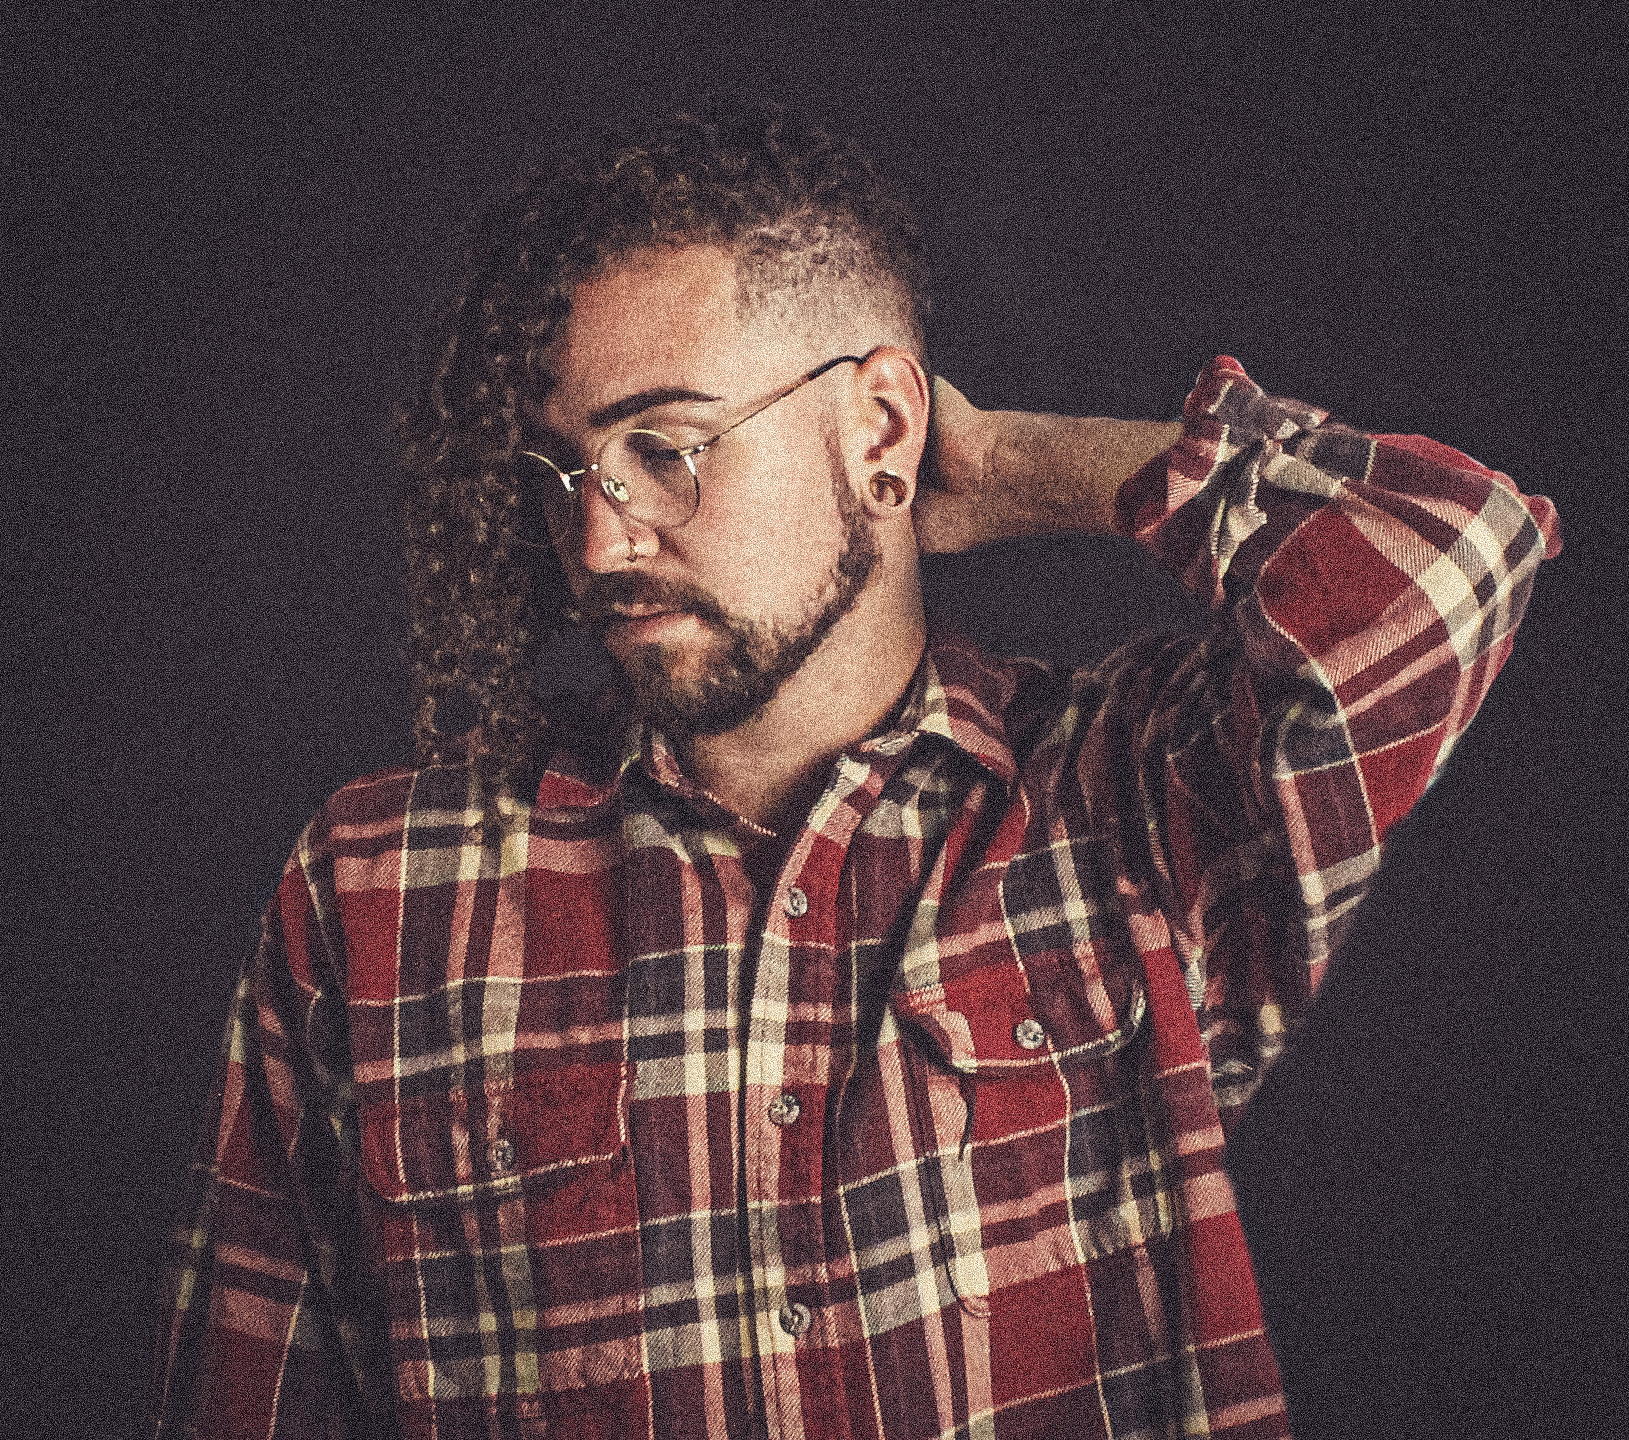 Canadian, Music, Producer, DJ, Artist, Inukshuk, Outwild, Happy Accidents, A World Away, Dabin, Monstercat, Left Behind, Wild Youth, Mason Vera Paine, Millennial, Outwild, EDM, Music, Everbright